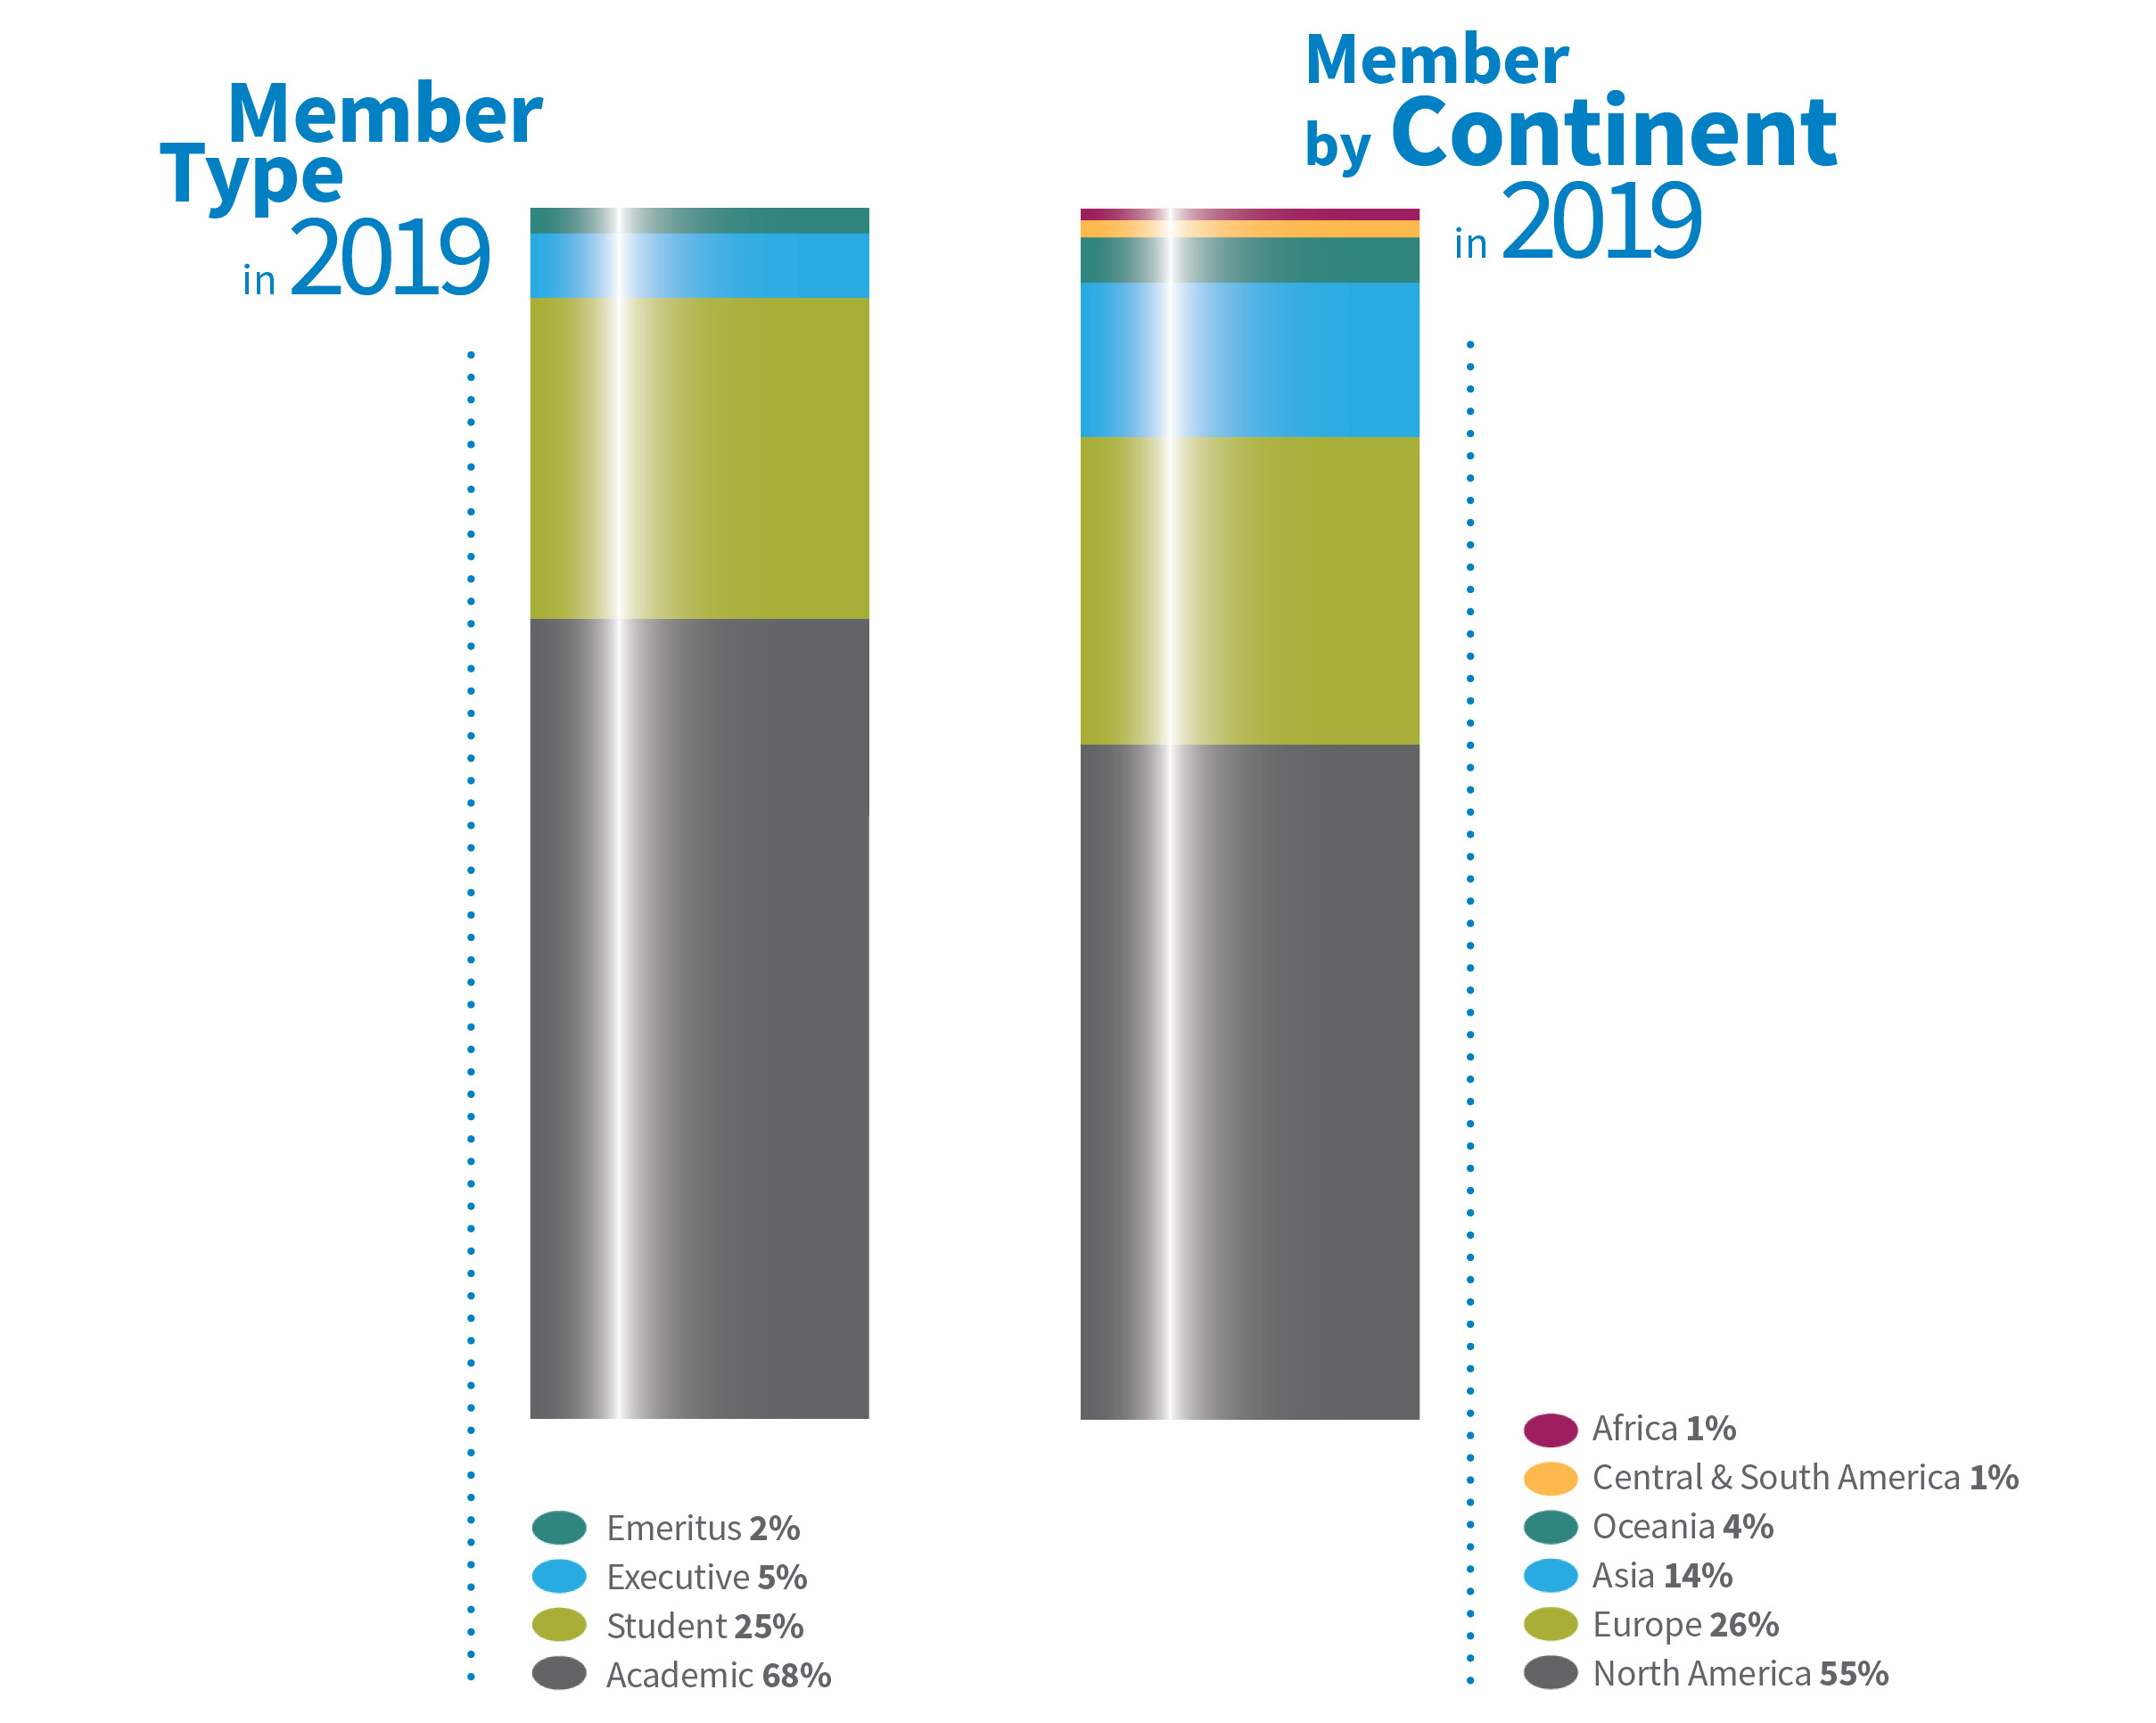 2019 Annual Report Members by Type and Region